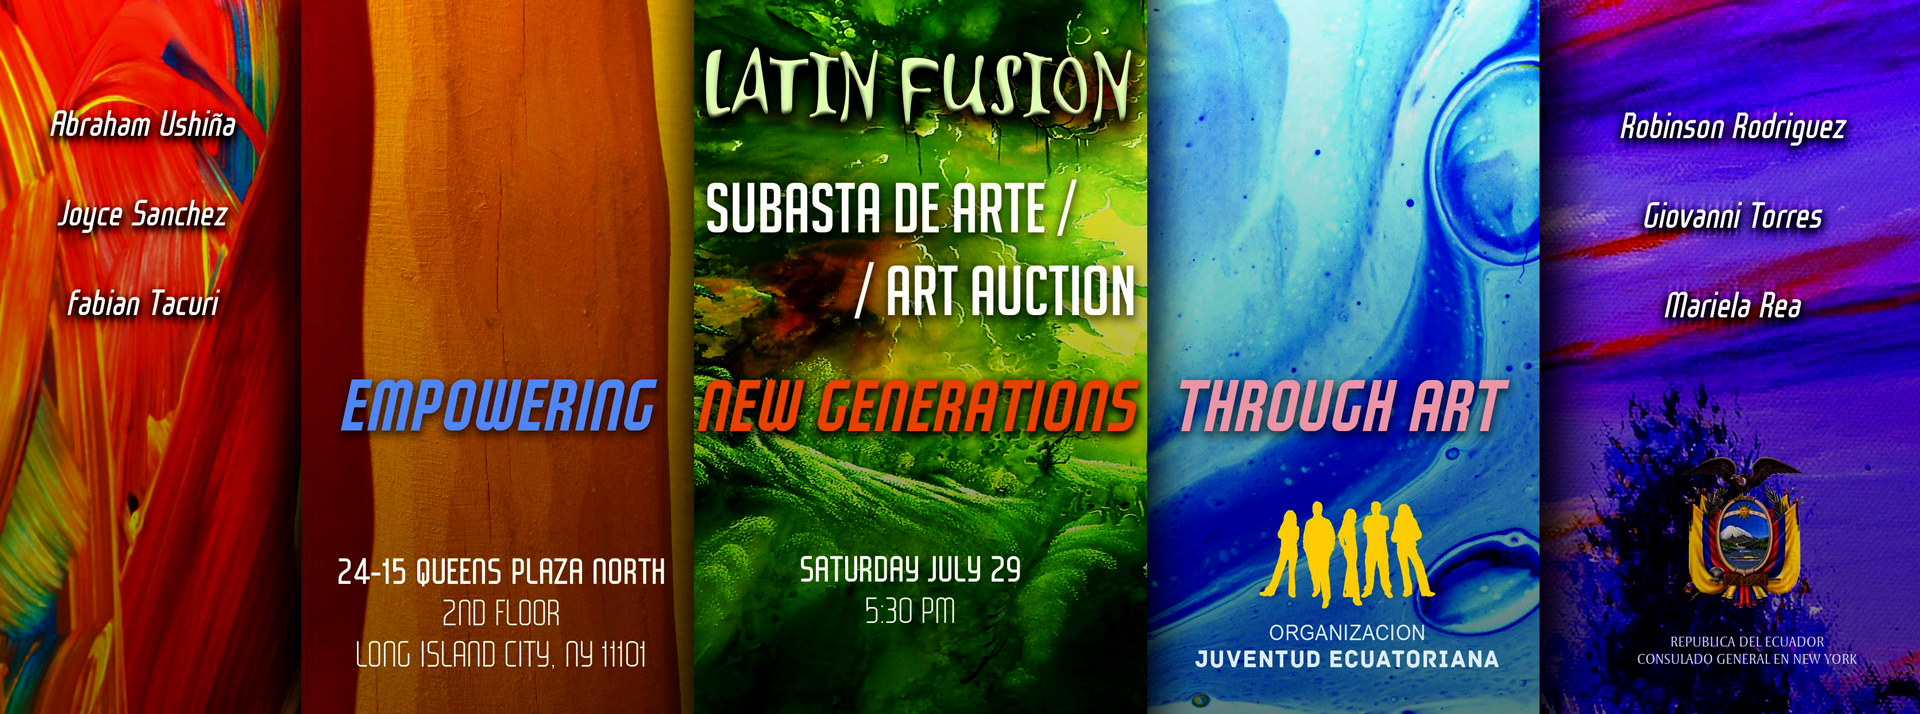 ART AUCTION / SUBASTA DE ARTE | LATIN FUSION